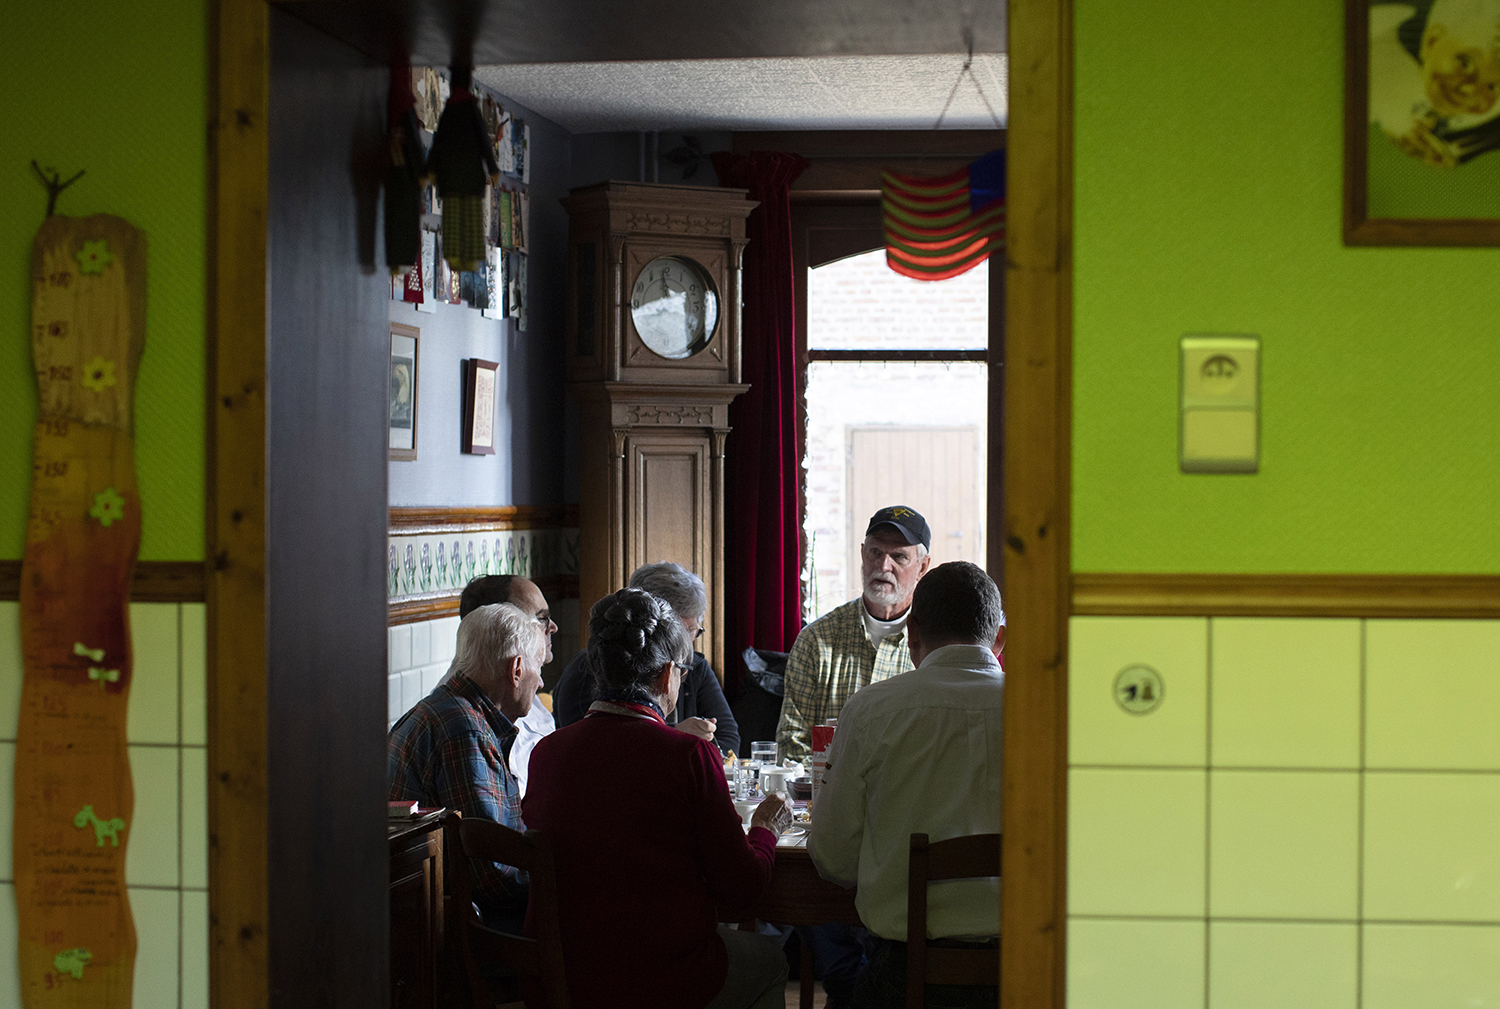 In this photo taken on Tuesday, Dec. 10, 2019, U.S. Battle of the Bulge veteran Arthur Jacobson, left, and his family have a lunch in the dining room of Remember Museum 39-45 directors Marcel and Mathilde Schmetz in Thimister-Clermont, Belgium.(Virginia Mayo/AP)